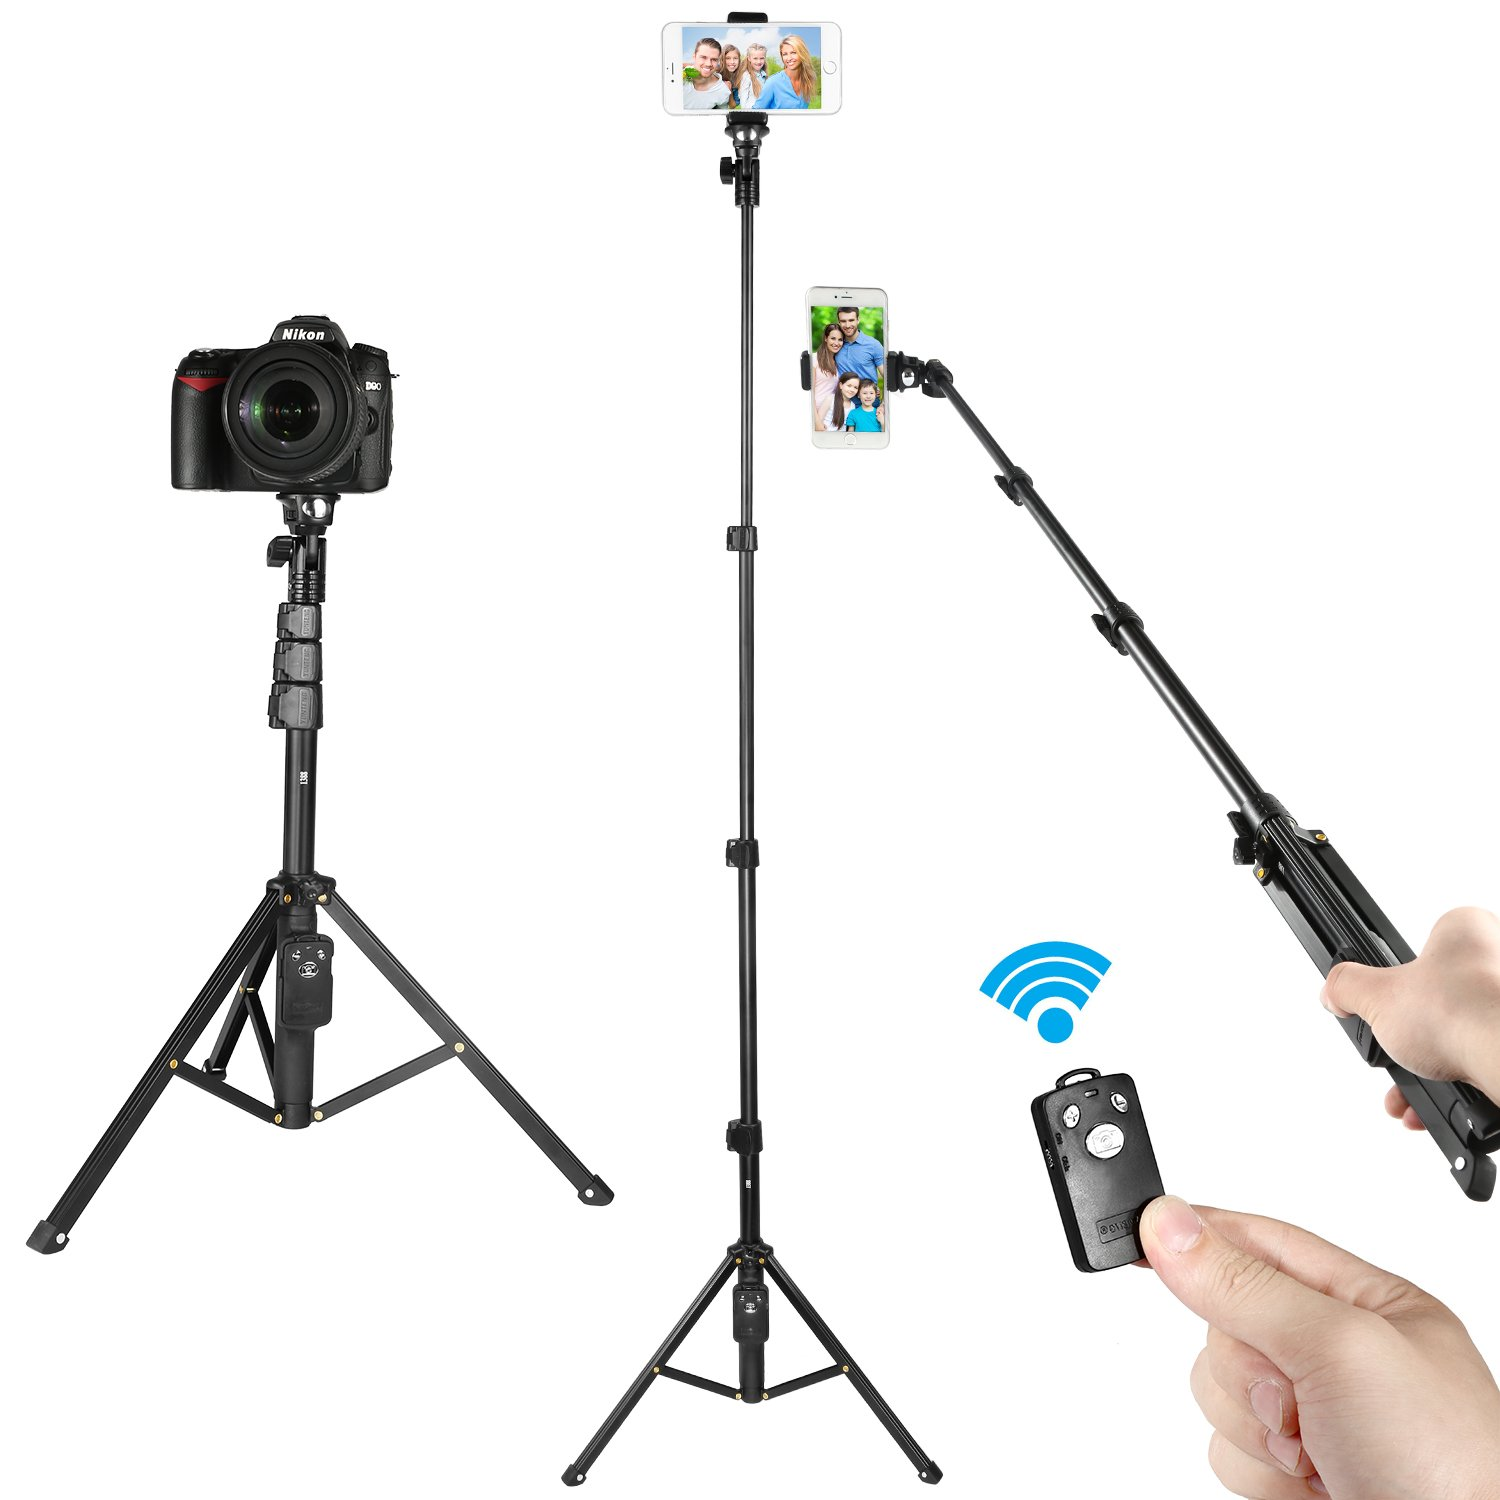 Selfie Stick Tripod, Kamisafe 51 Inch Extendable Selfie Stick Phone Tripod Stand with Wireless Remote Compatible for iPhone Xs MAX XR X 8 7 6 Plus Galaxy S9 S8 S7 Plus Android Phone Gopro Camera